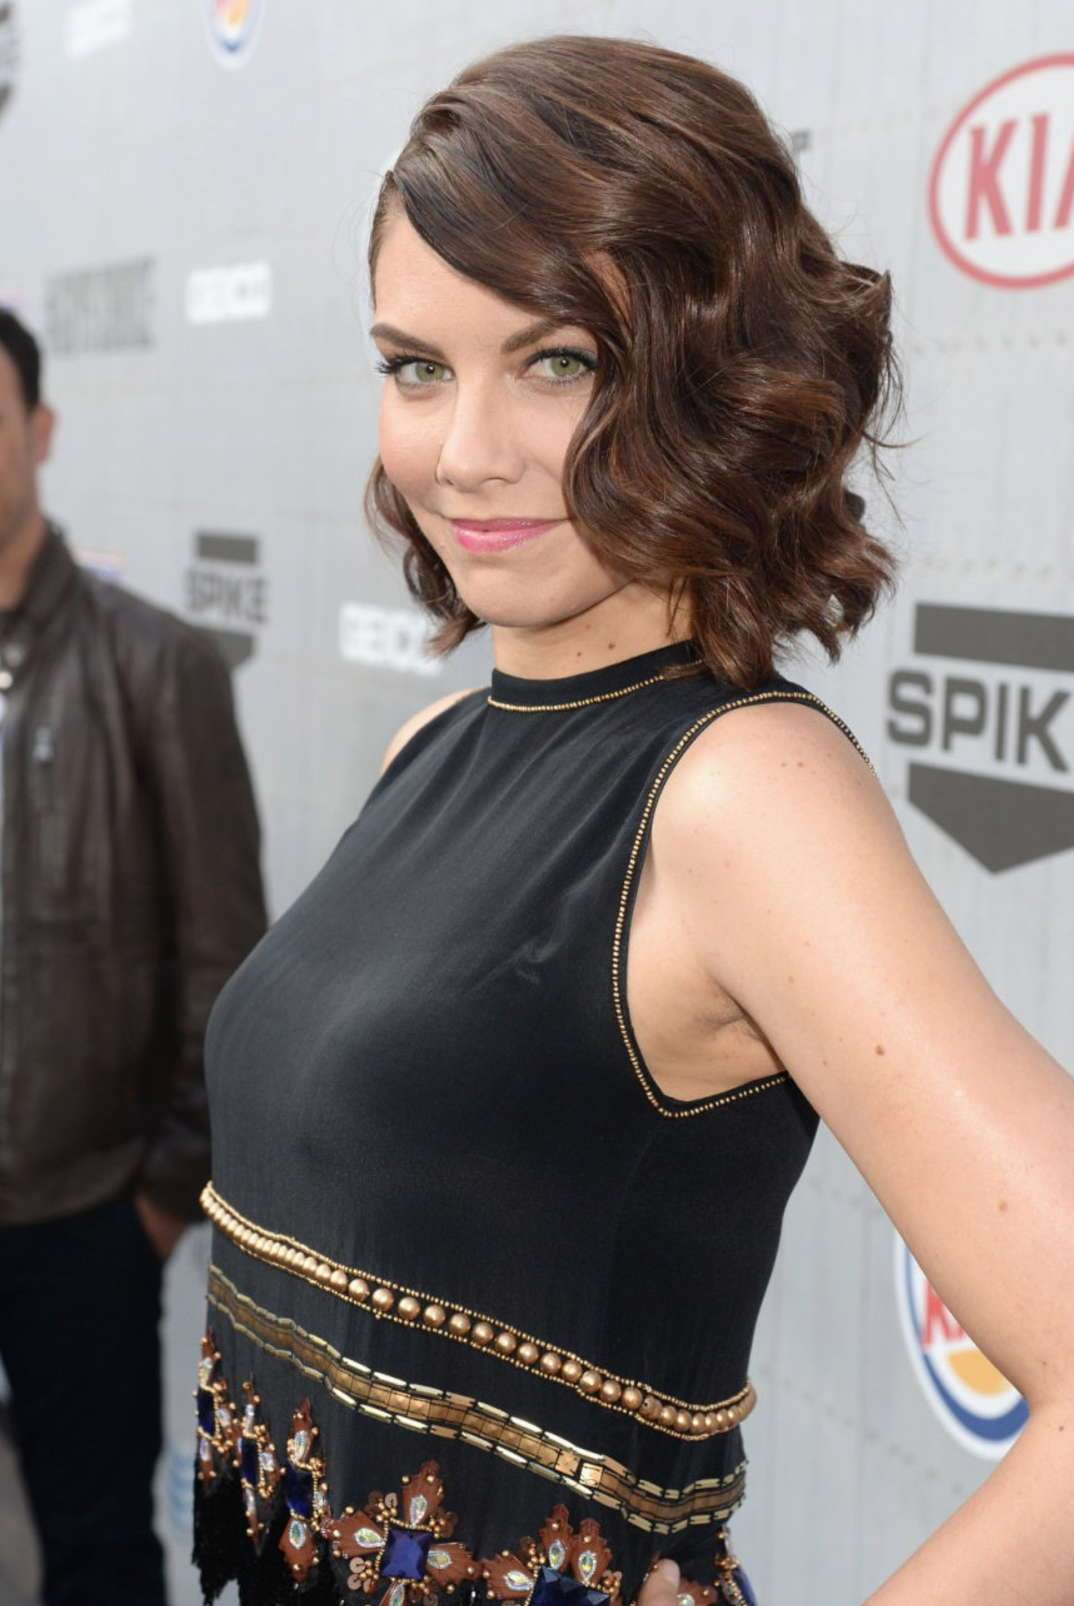 Lauren Cohan naked (55 foto and video), Pussy, Paparazzi, Boobs, braless 2017